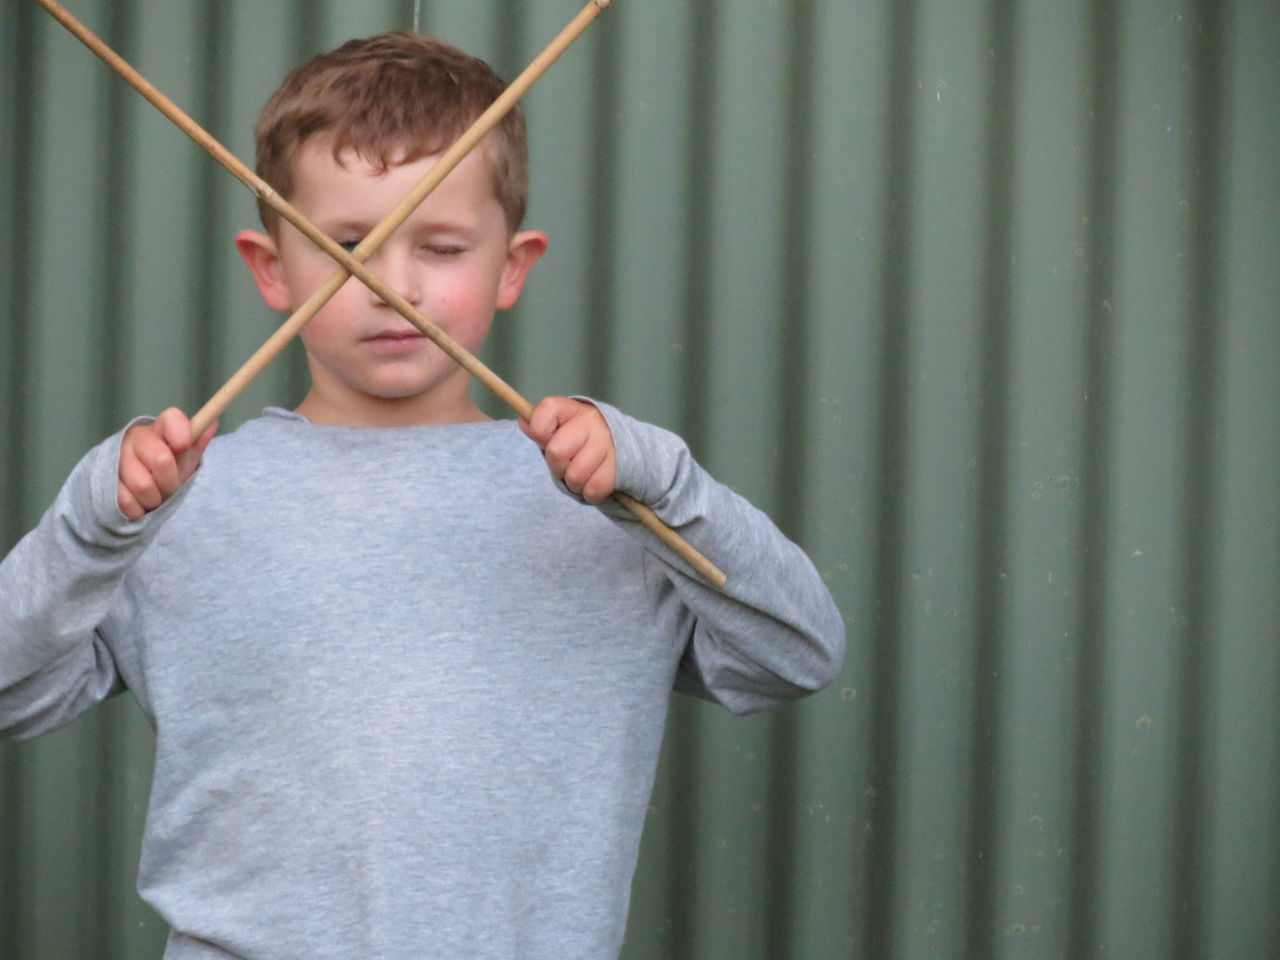 Playing Child People One Person Boys Indoors  Human Body Part Standing Day Human Hand Children Only Close-up Bamboo Sticks Defiance Resistance  Growing Up Trouble Family Targeting Aiming Resist TCPM